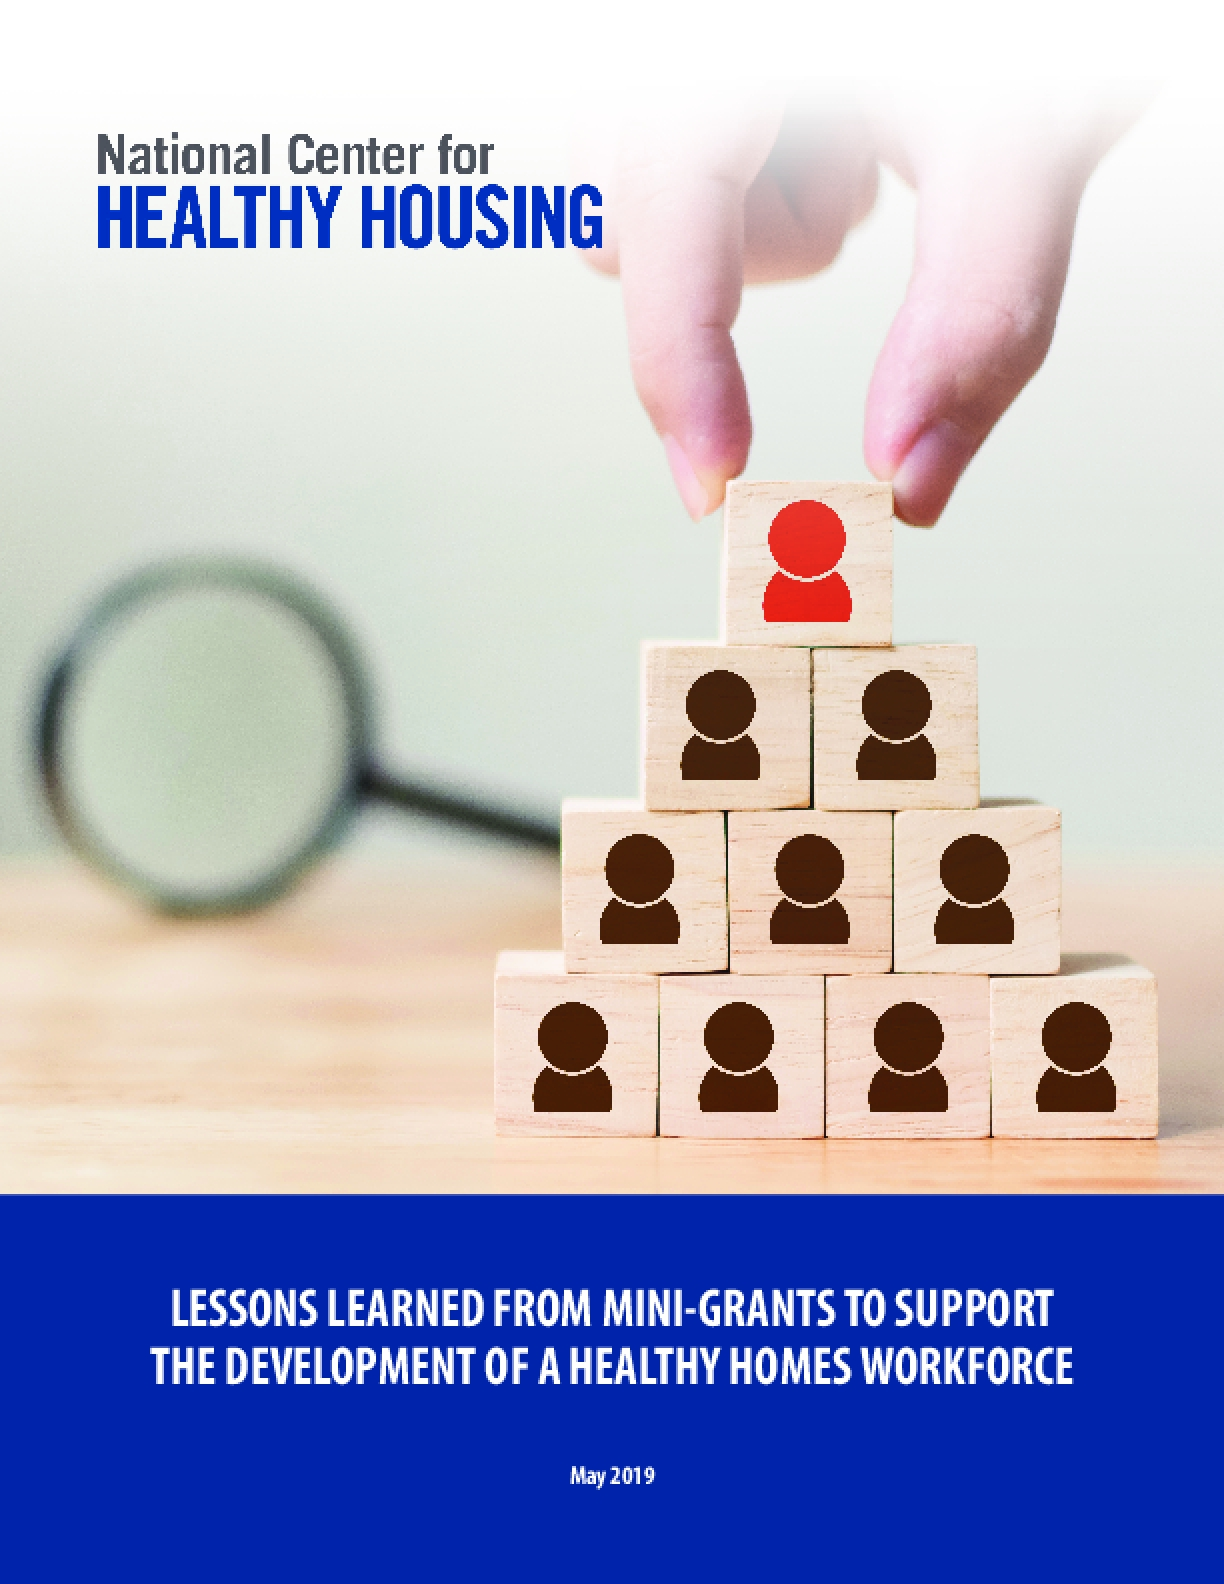 Lessons Learned from Mini-grants to Support the Development of a Healthy Homes Workforce